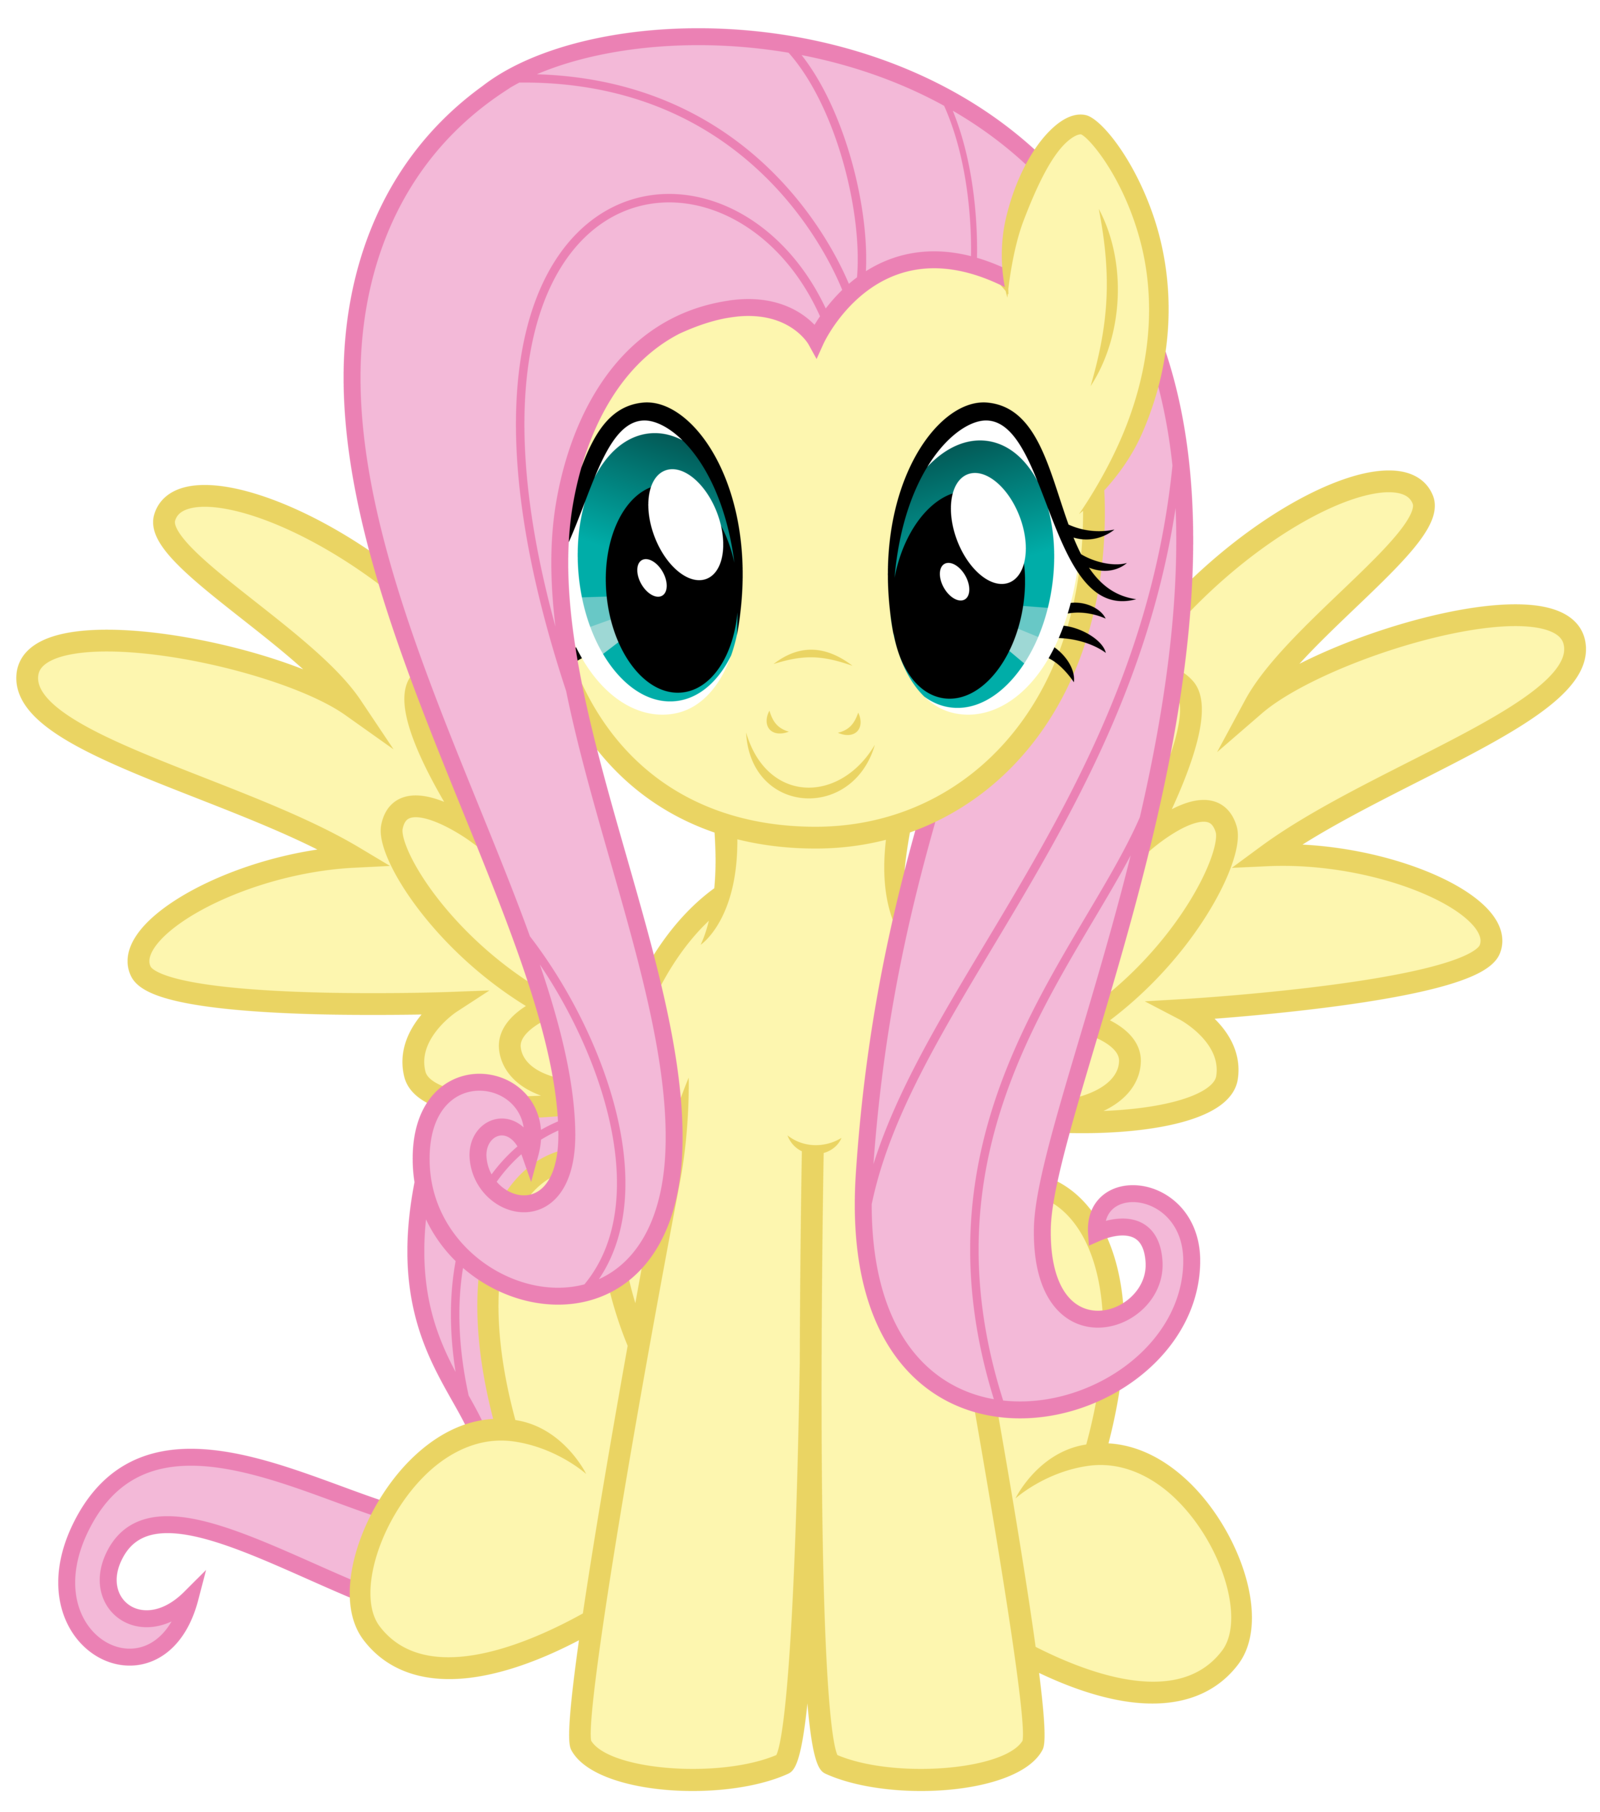 What does Fluttershy think of you? (1)